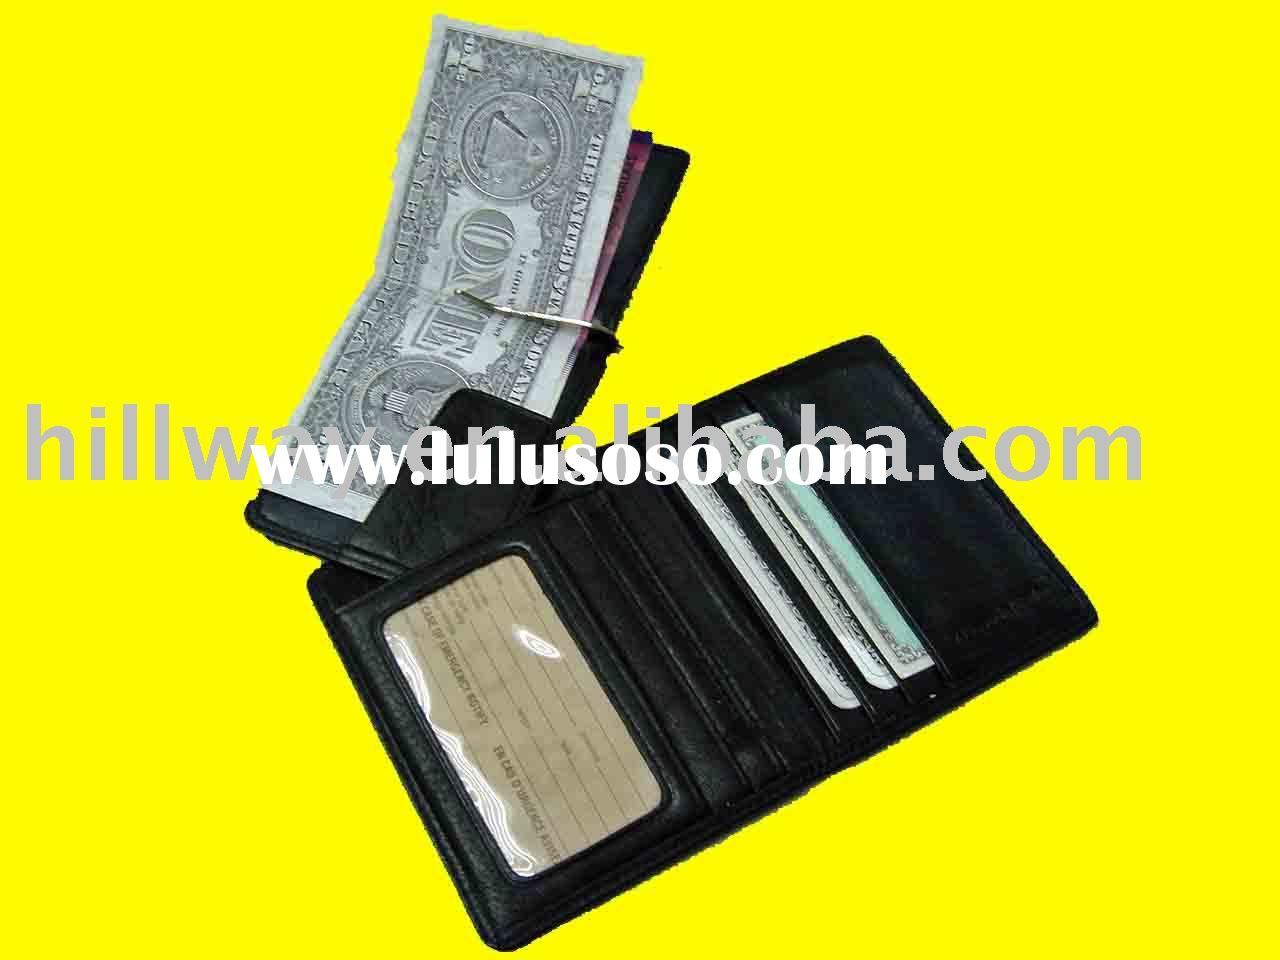 METAL MONEY CLIP ID CARD HOLDER